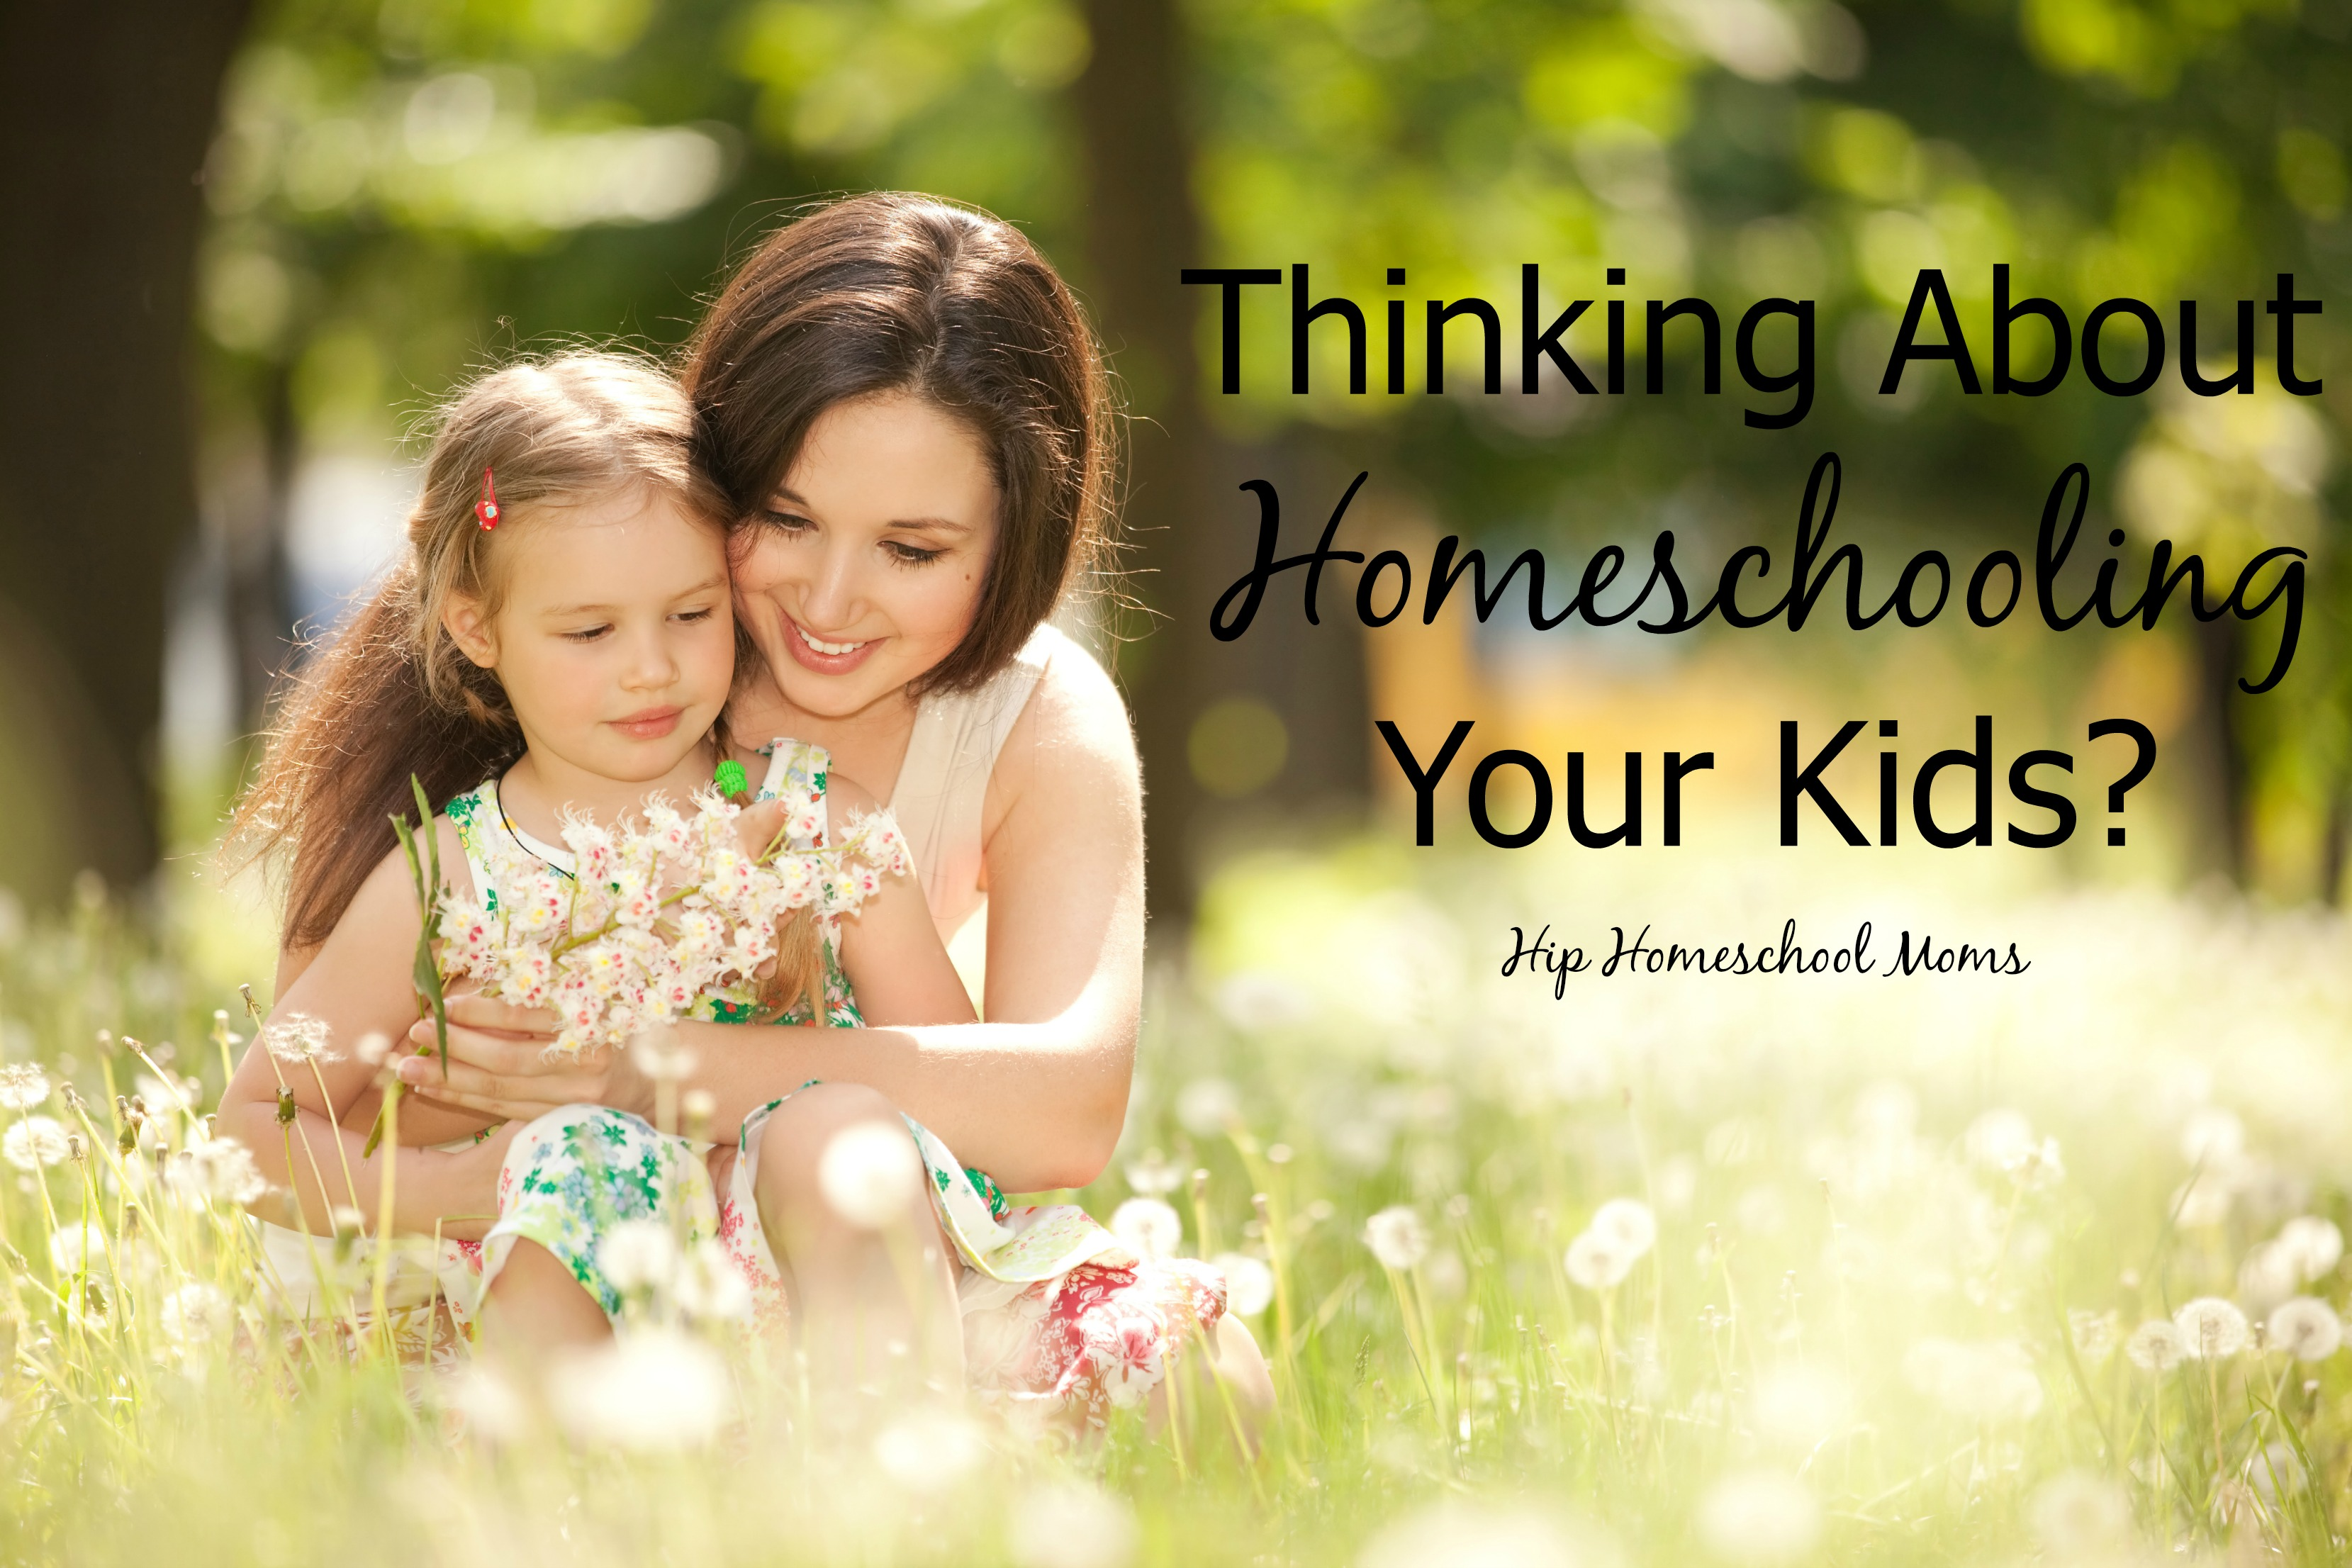 Thinking About Homeschooling Your Kids?